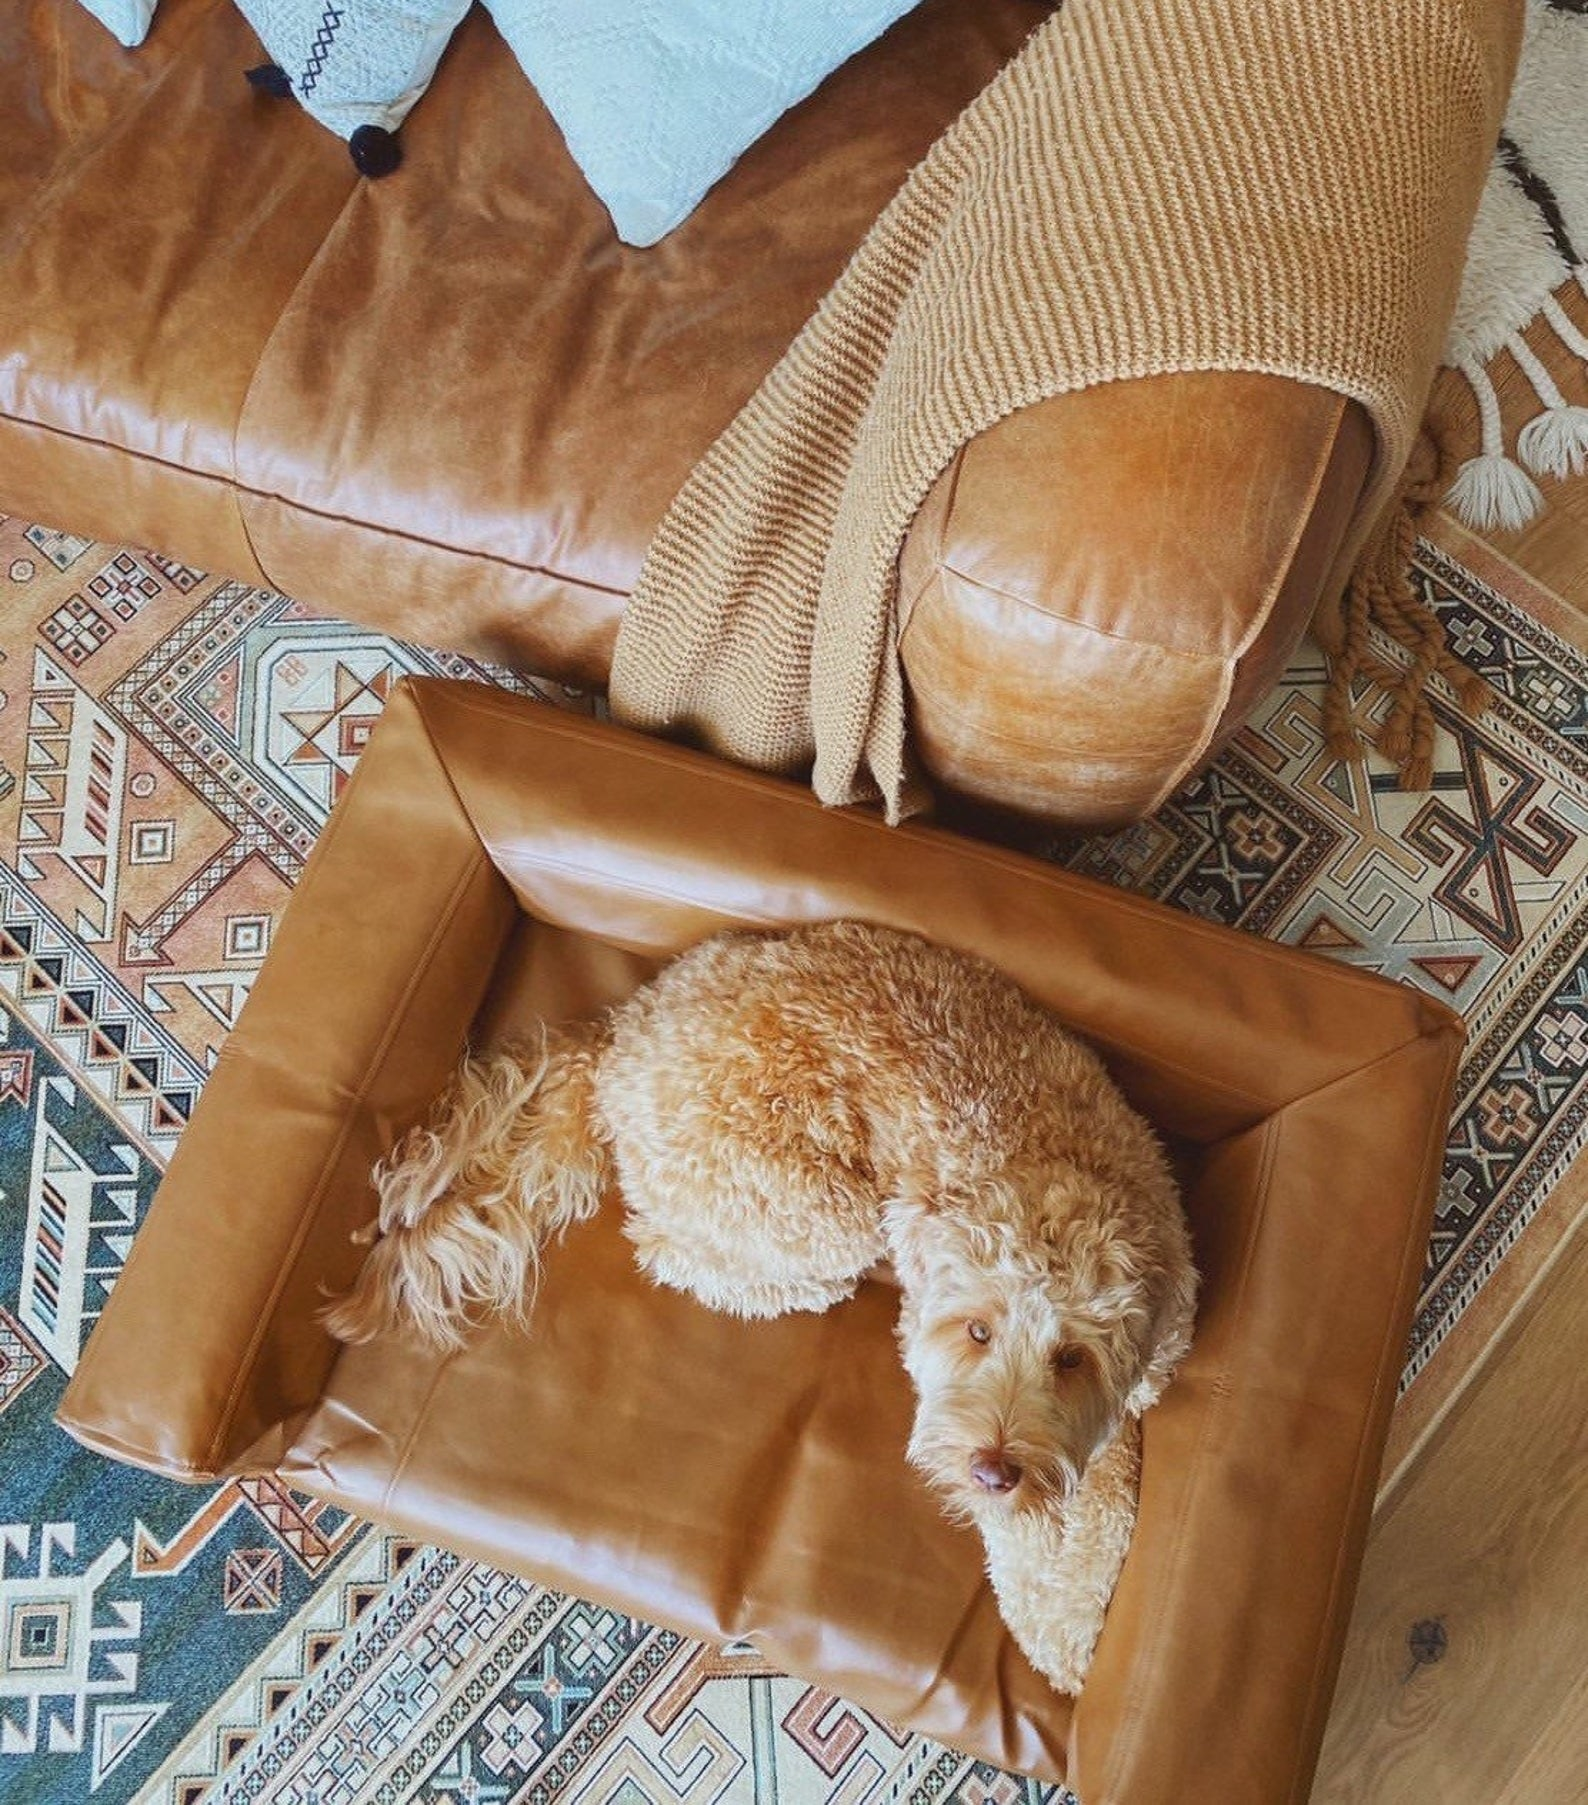 a medium sized dog lounges on a brown leather dog couch